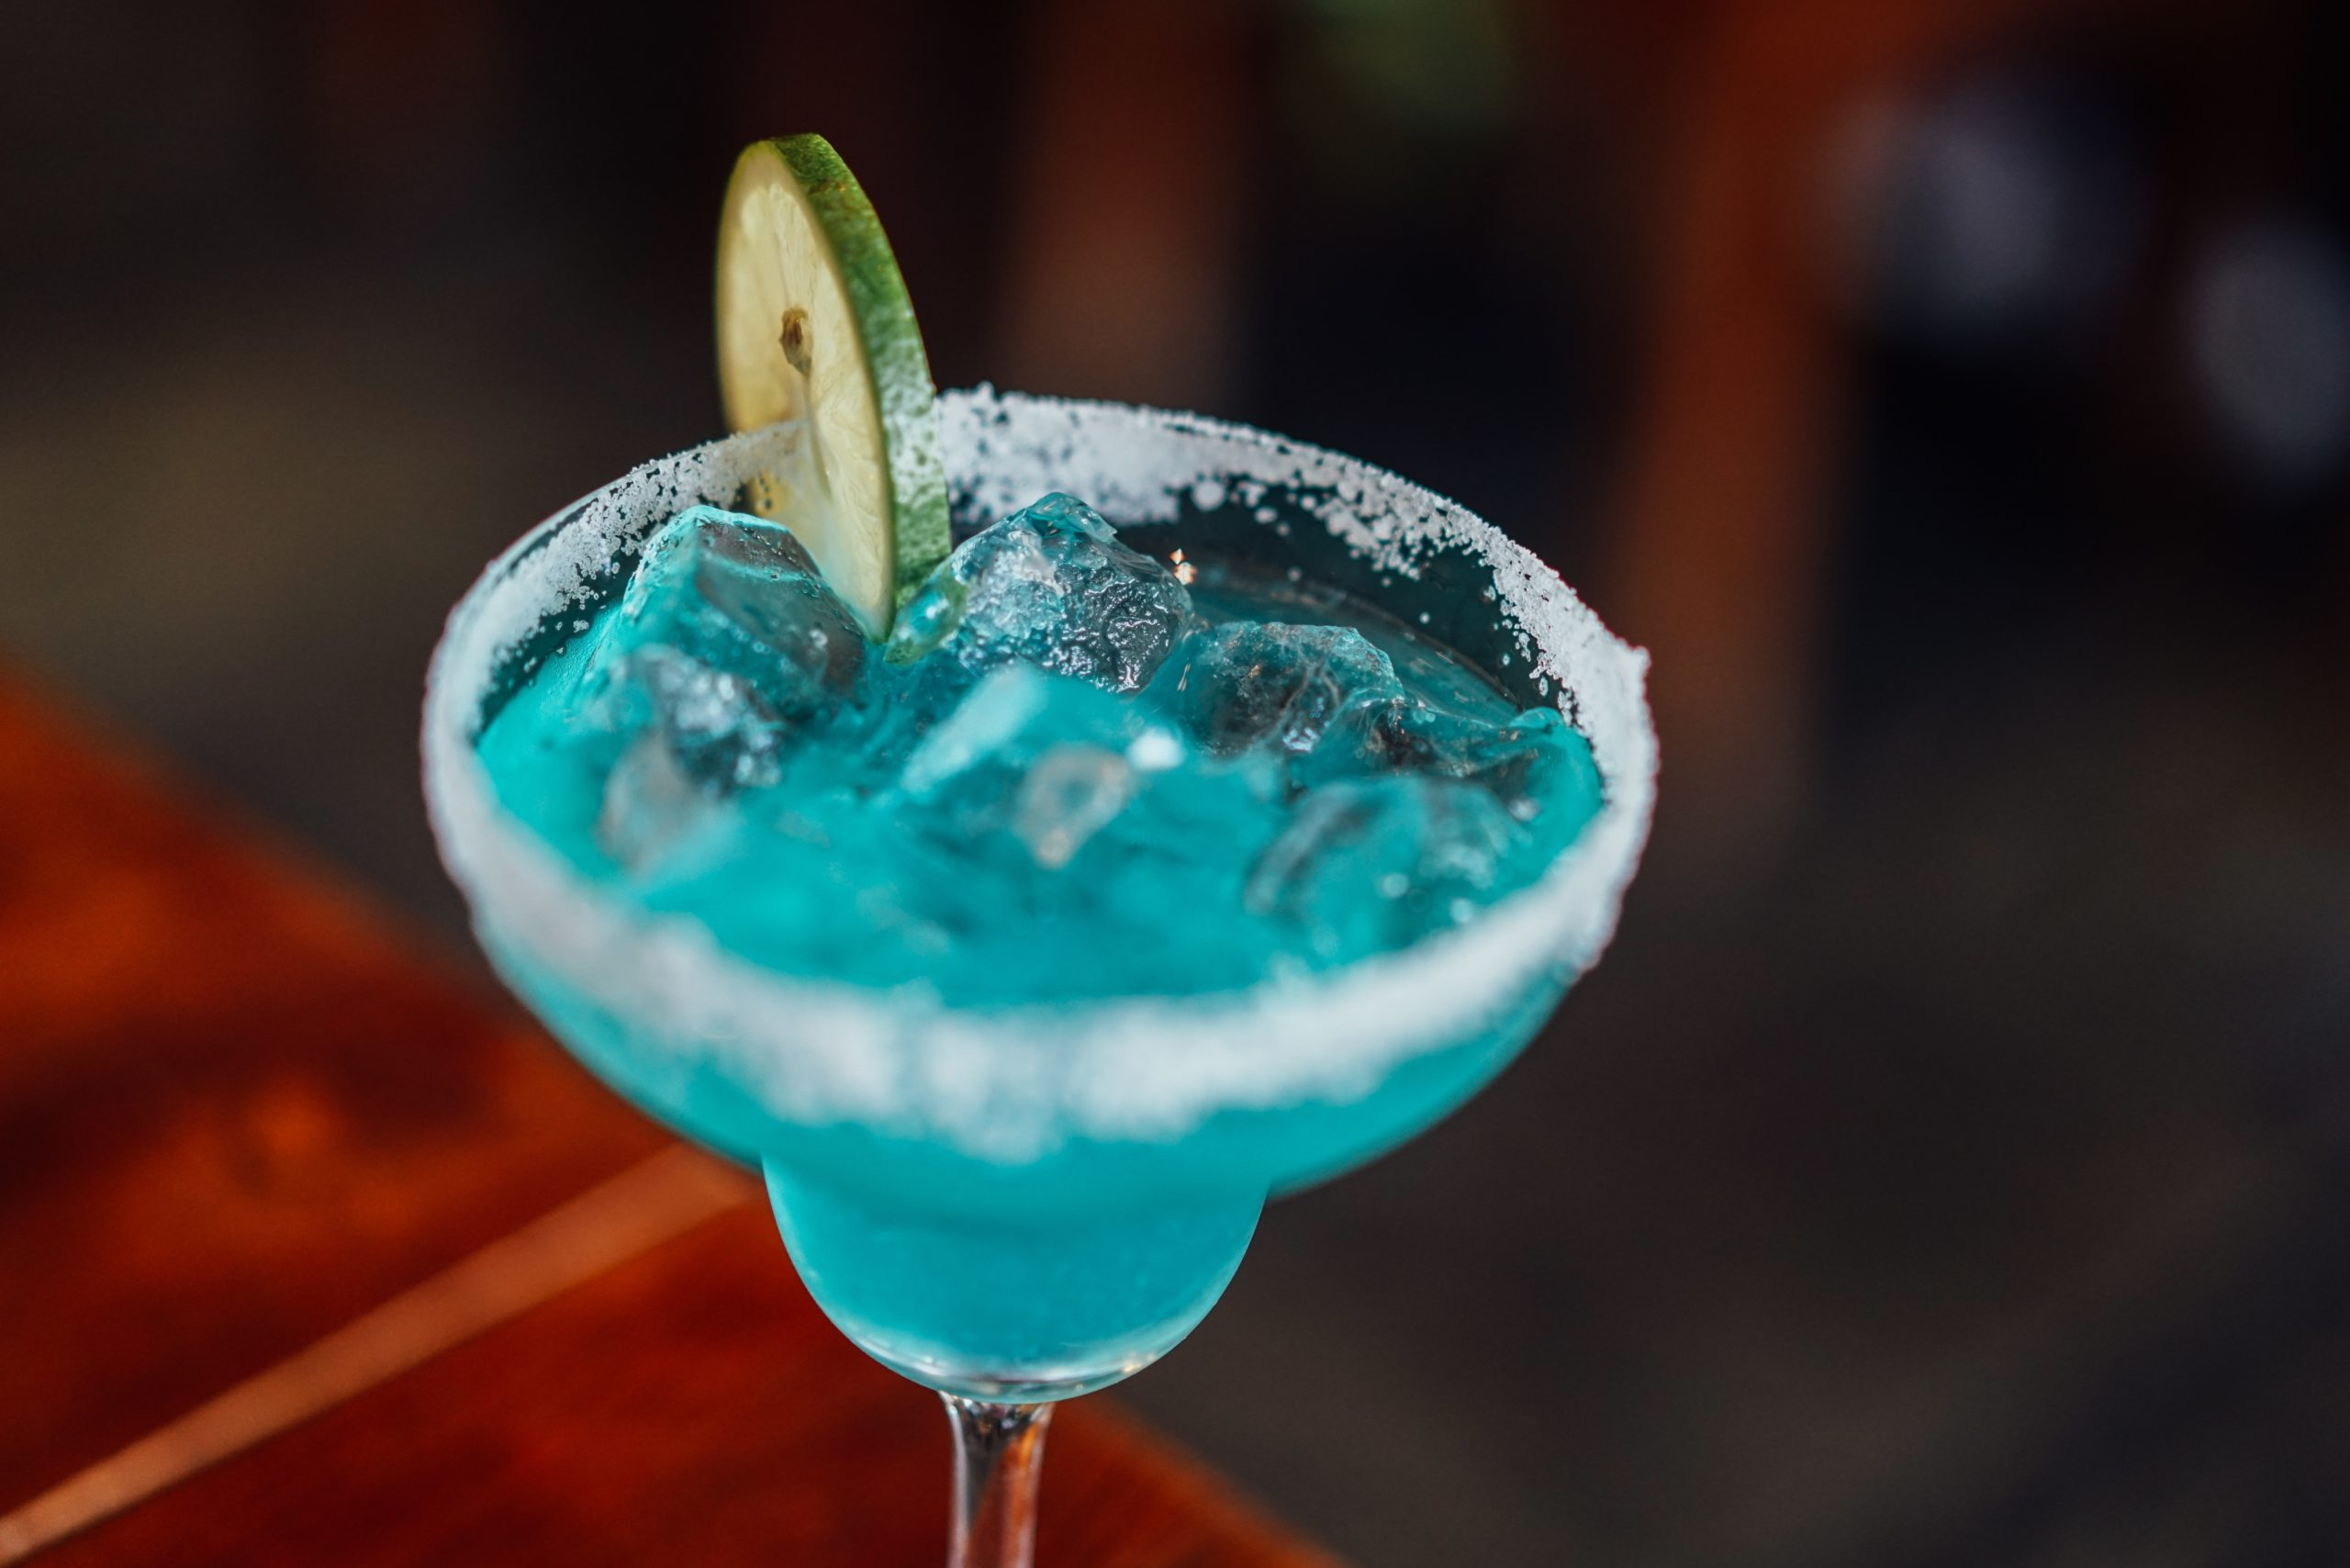 A blue margarita with a lime wedge and salt on the rim.